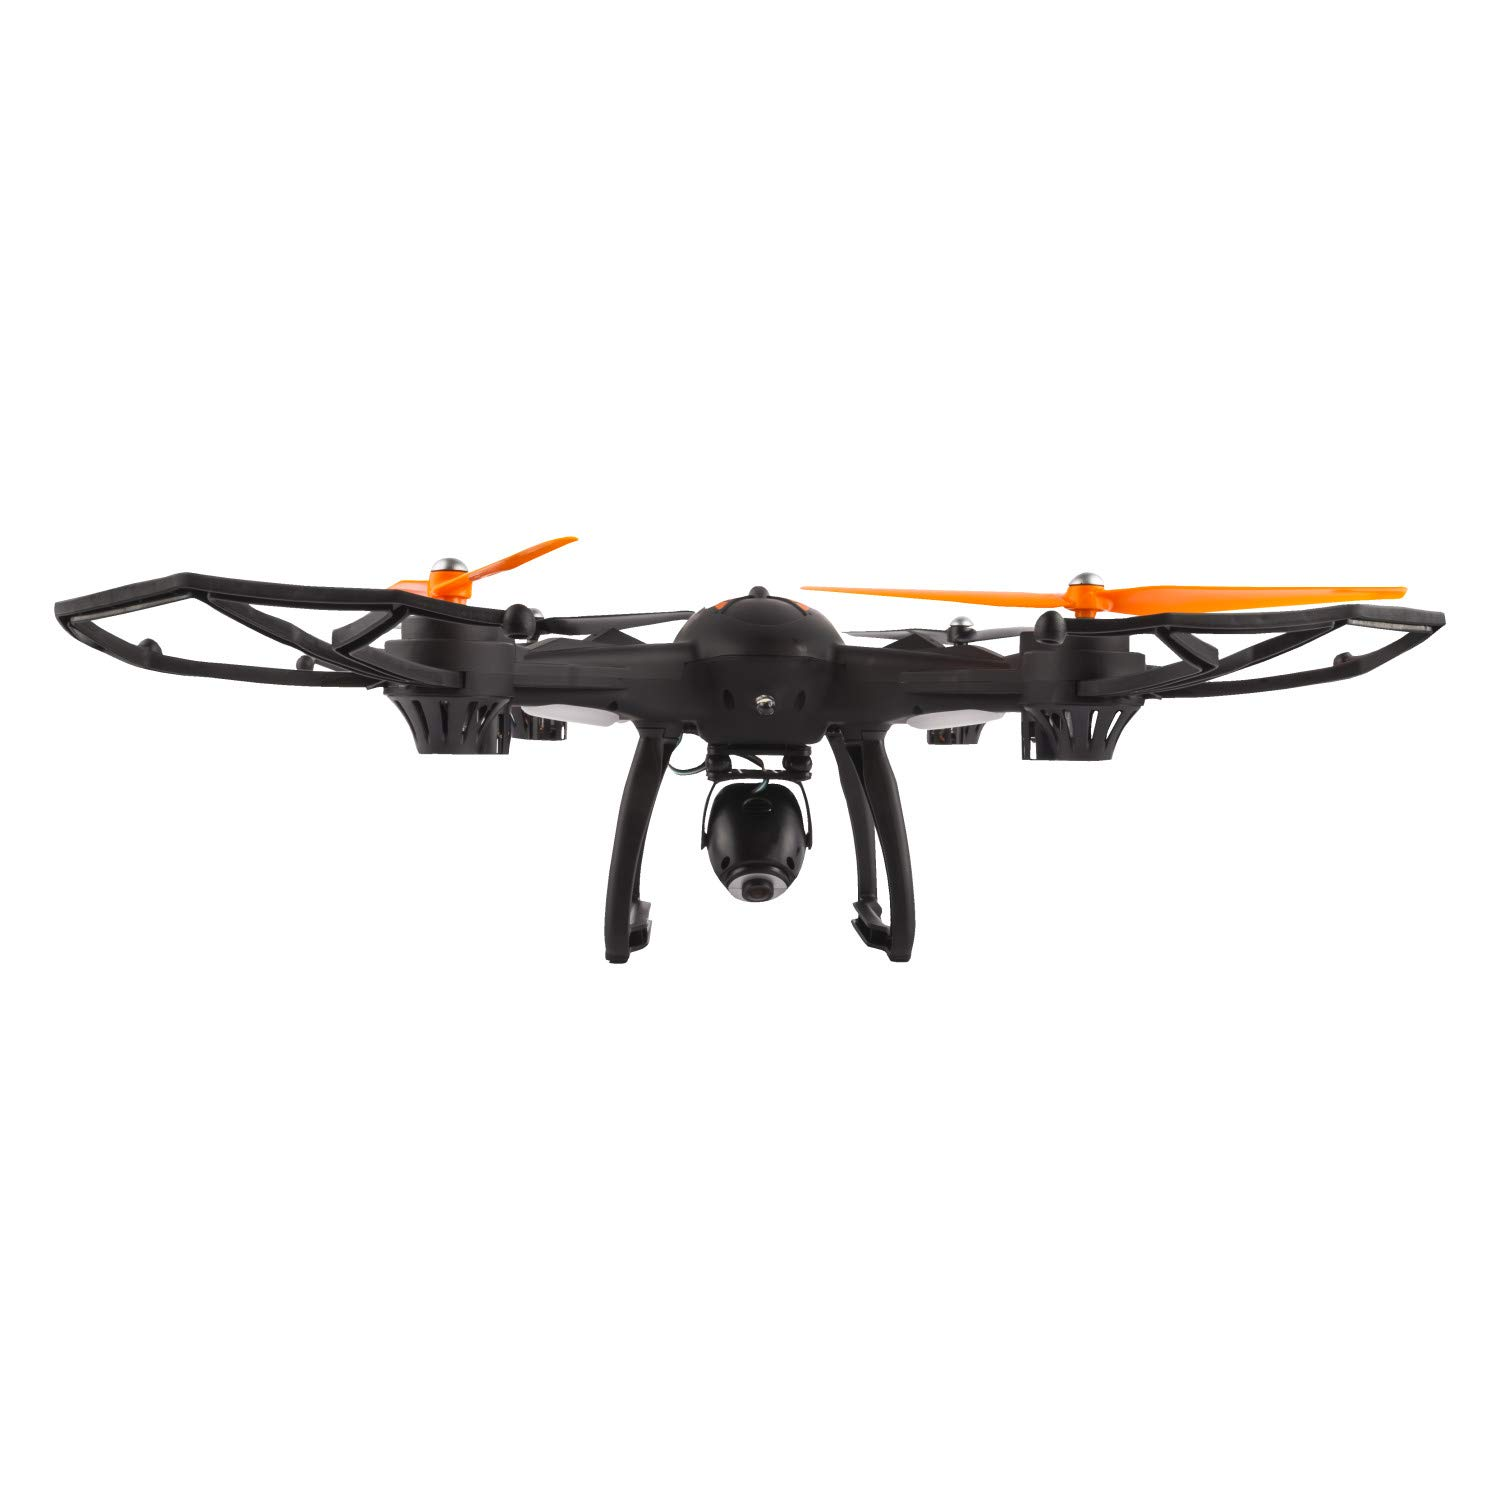 Vivitar DRC-888 360 Sky View WiFi HD Video Drone with GPS and 16 Mega Pixel  Camera, Works with iOS & Android Devices, Built in Dual GPS Module & Wi-Fi